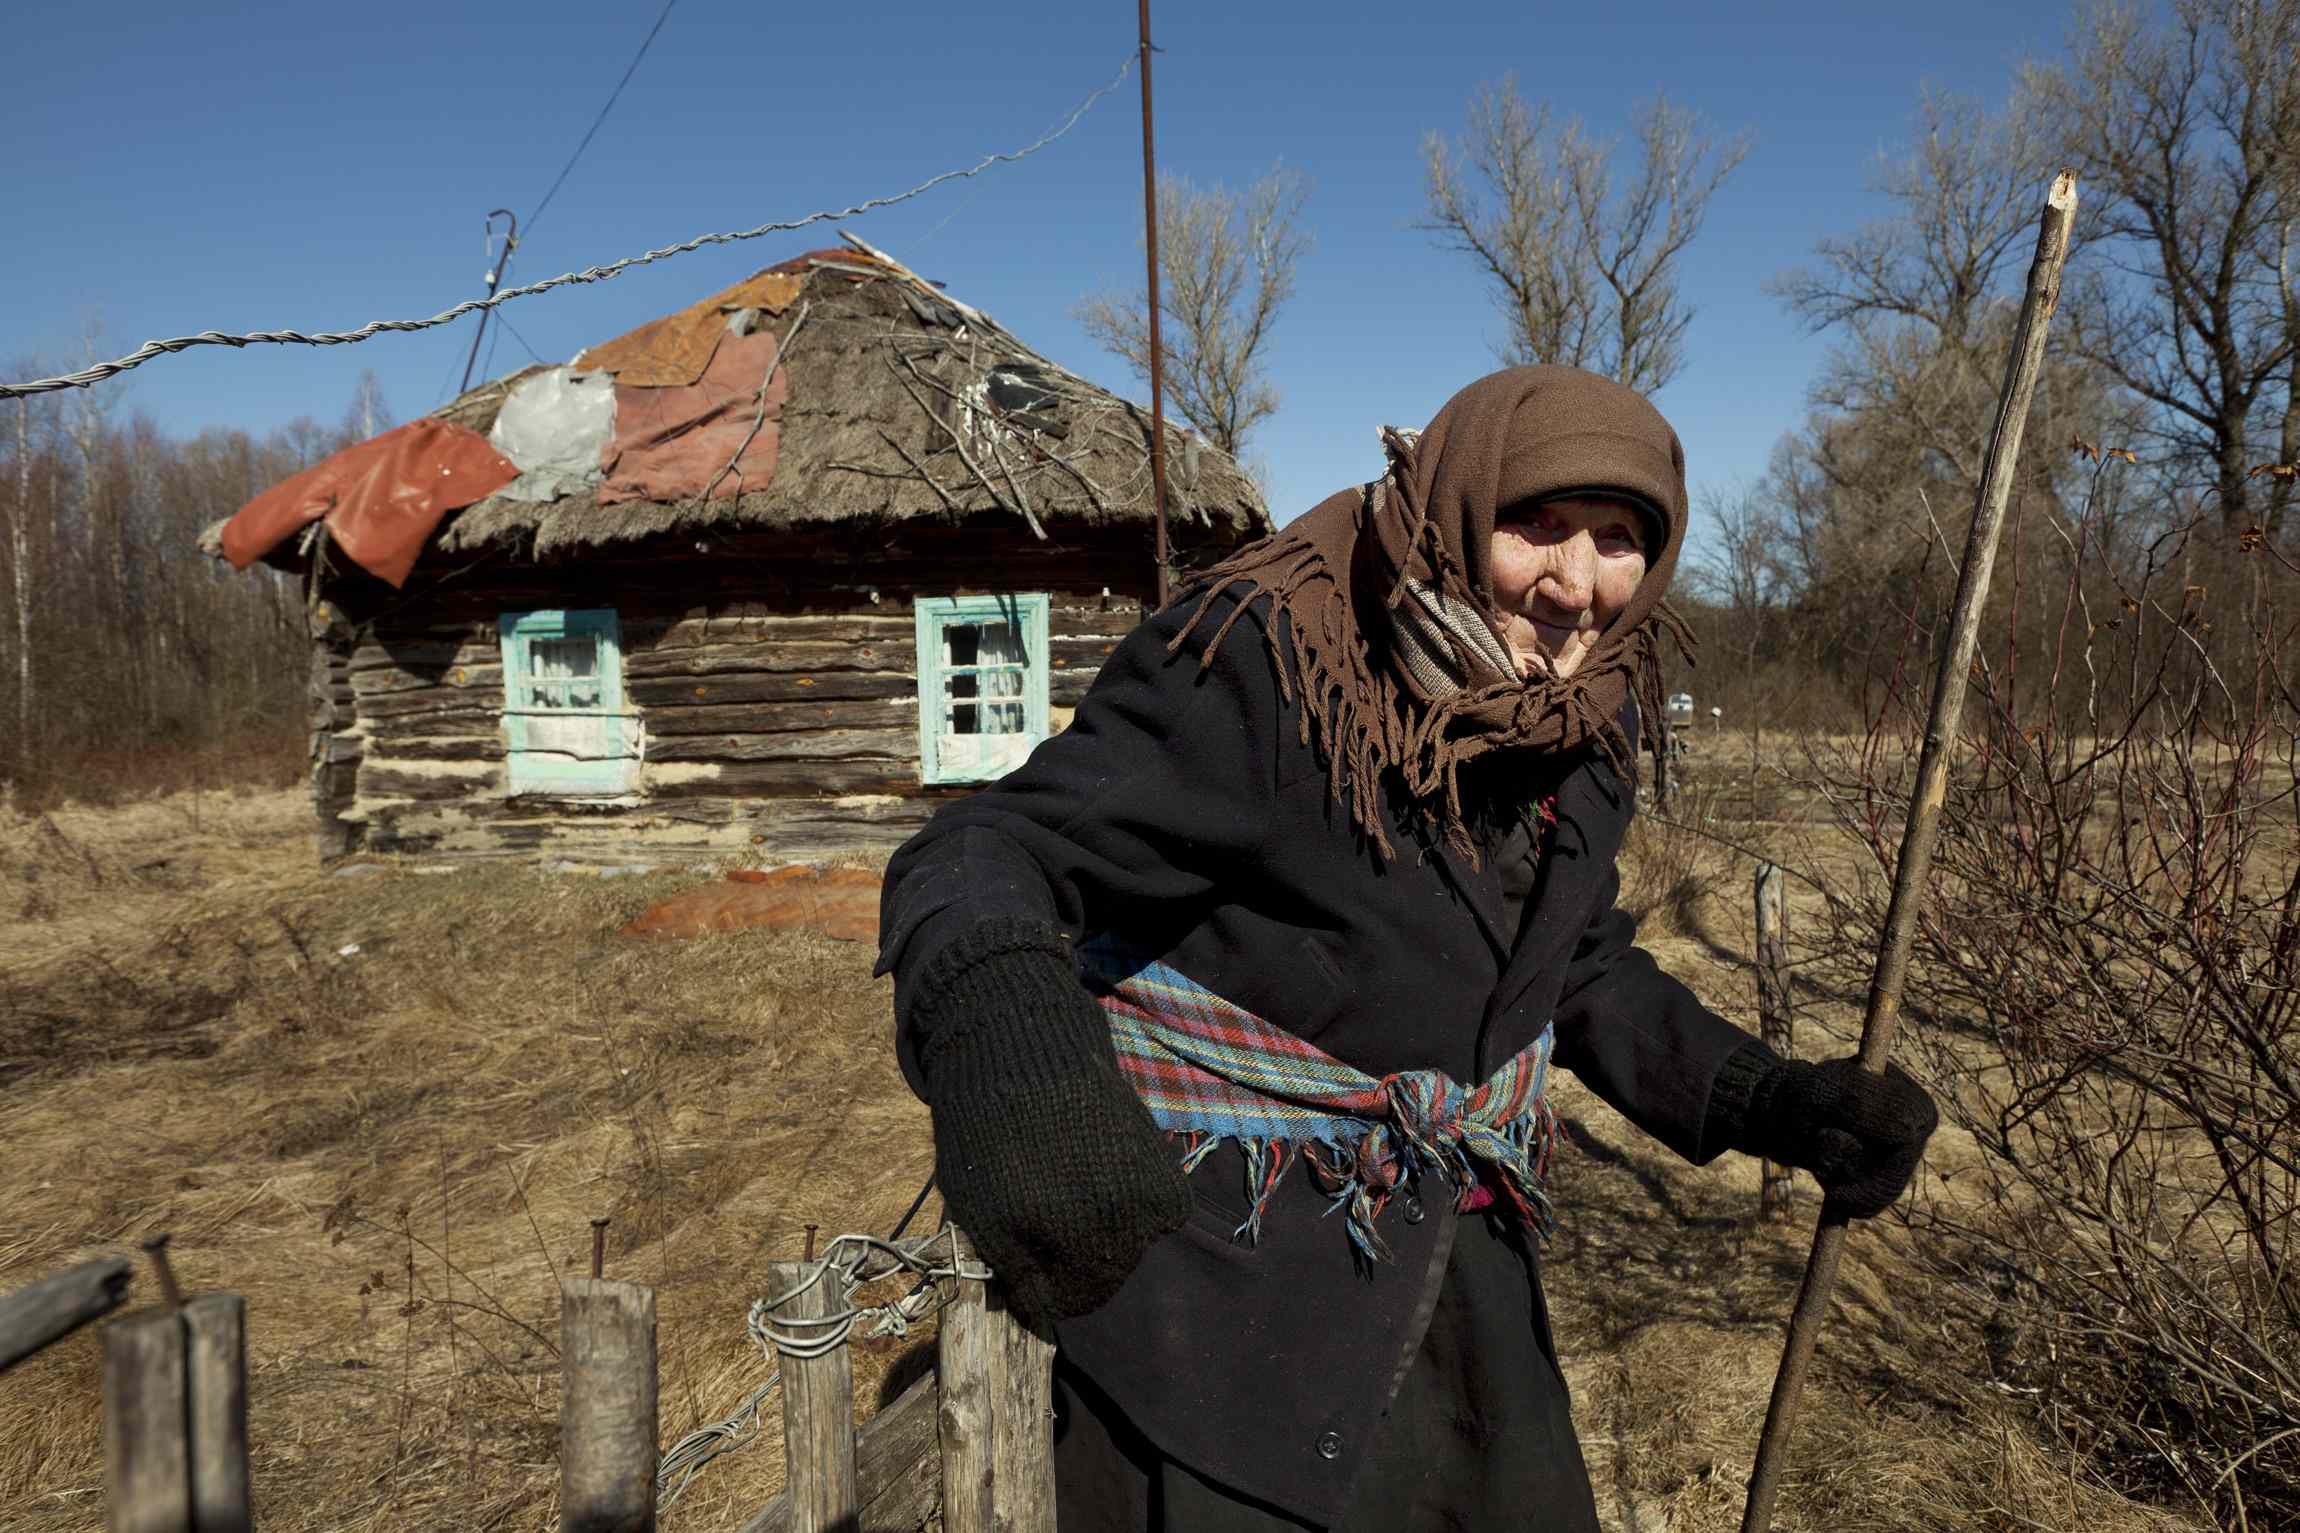 92year-old Kharytina Descha is one of the few elderly people who have returned to their village homes inside the Exclusion Zone. Although surrounded by devastation and isolation, she prefers to die on her own soil As she has difficulties walking and hearing she does not have much communication with anybody in the village but seems to be quite content with her situation.  Background: After the catastrophe, close to 100.000 inhabitants who lived in villages inside the 30km Zone were evacuated. Ignoring radiation levels, a (now diminishing) number of elderly people have returned to their homes. Although surrounded by devastation and isolation, they prefer to die on their own soil than of a broken heart in anonymous city suburbs. At first Ukrainian officials discouraged them, but soon they turned a blind eye.